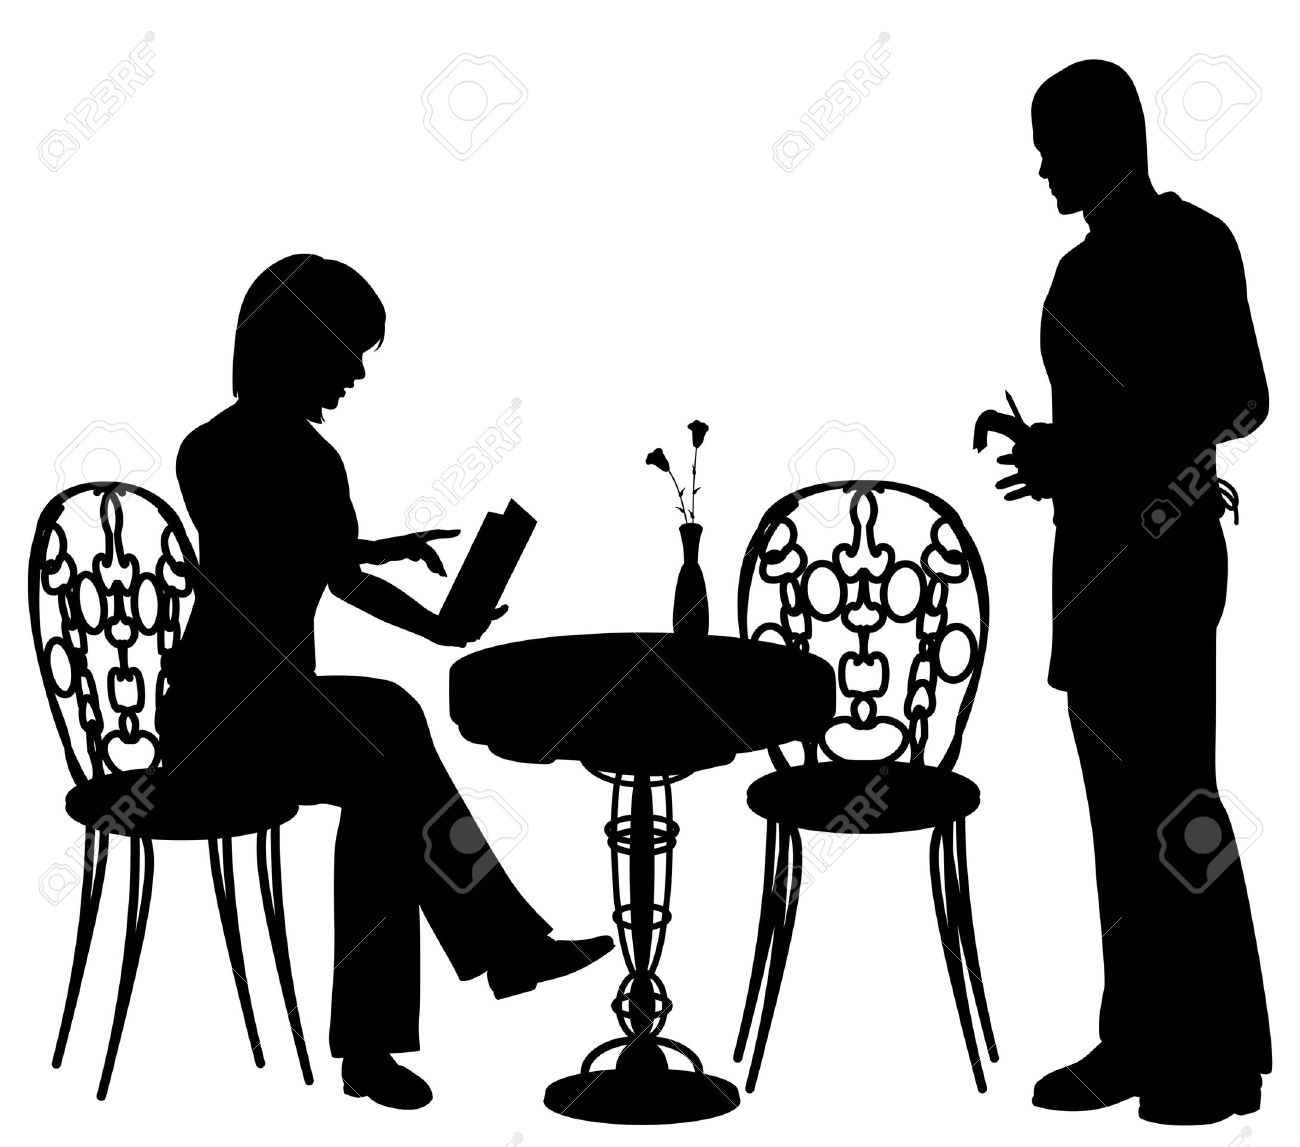 Editable Vector Silhouette Of A Woman Ordering Food And Drink.